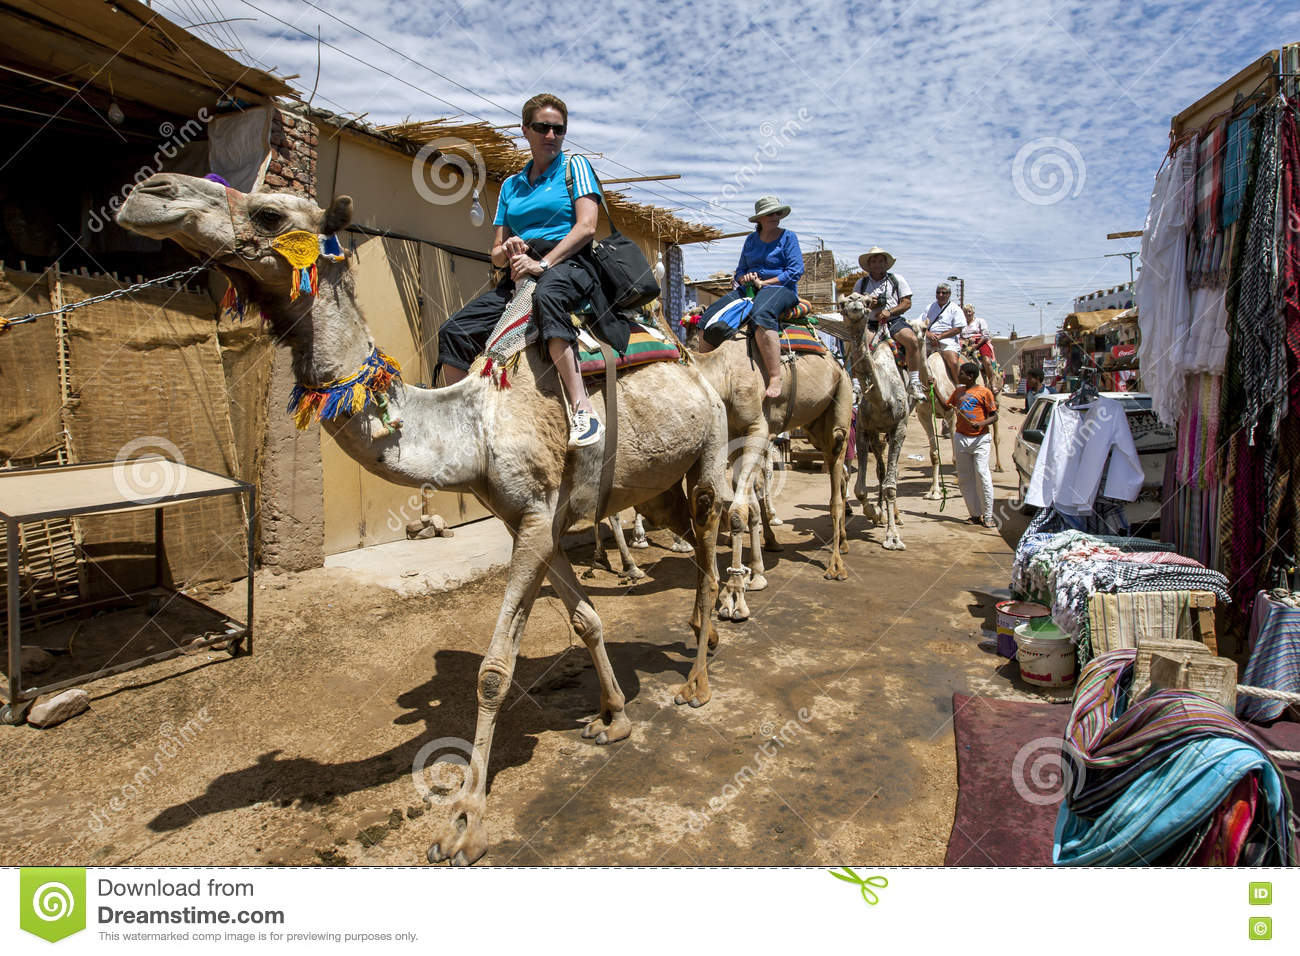 Tourists Aboard Camels In The Nubian Village Of Garb.